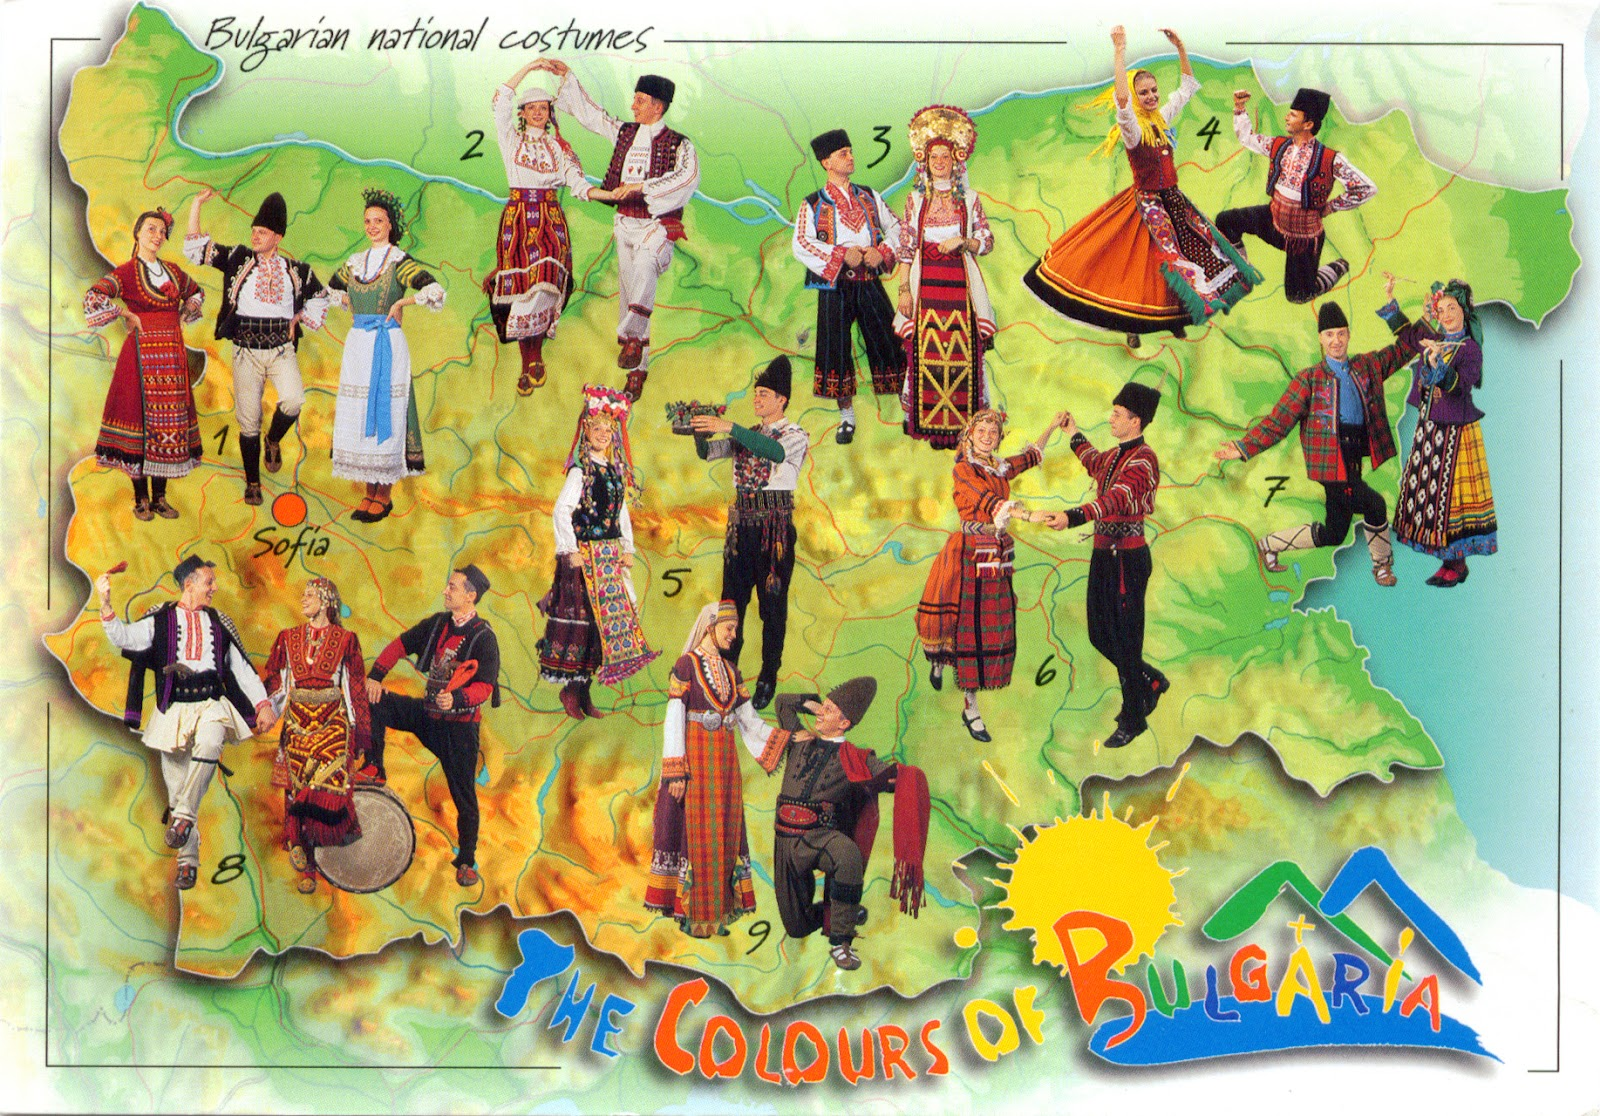 National Costume of Cuba http://worldcometomyhome.blogspot.com/2013/02/0504-bulgaria-map-and-traditional.html